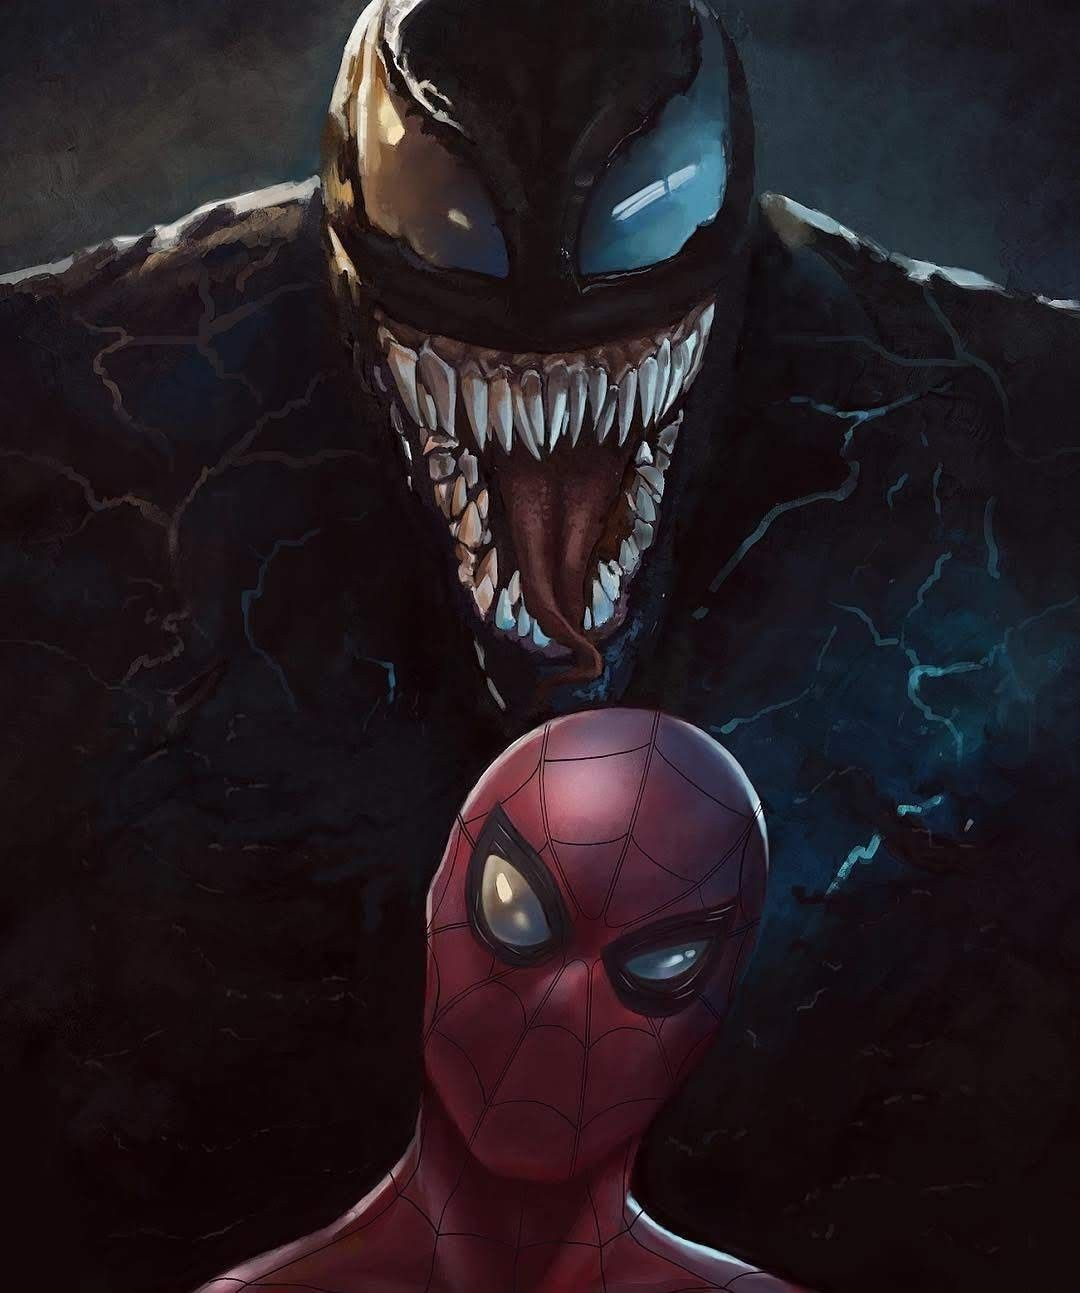 Marvel spiderman image by Sweet Heaven on Marvel & DC in